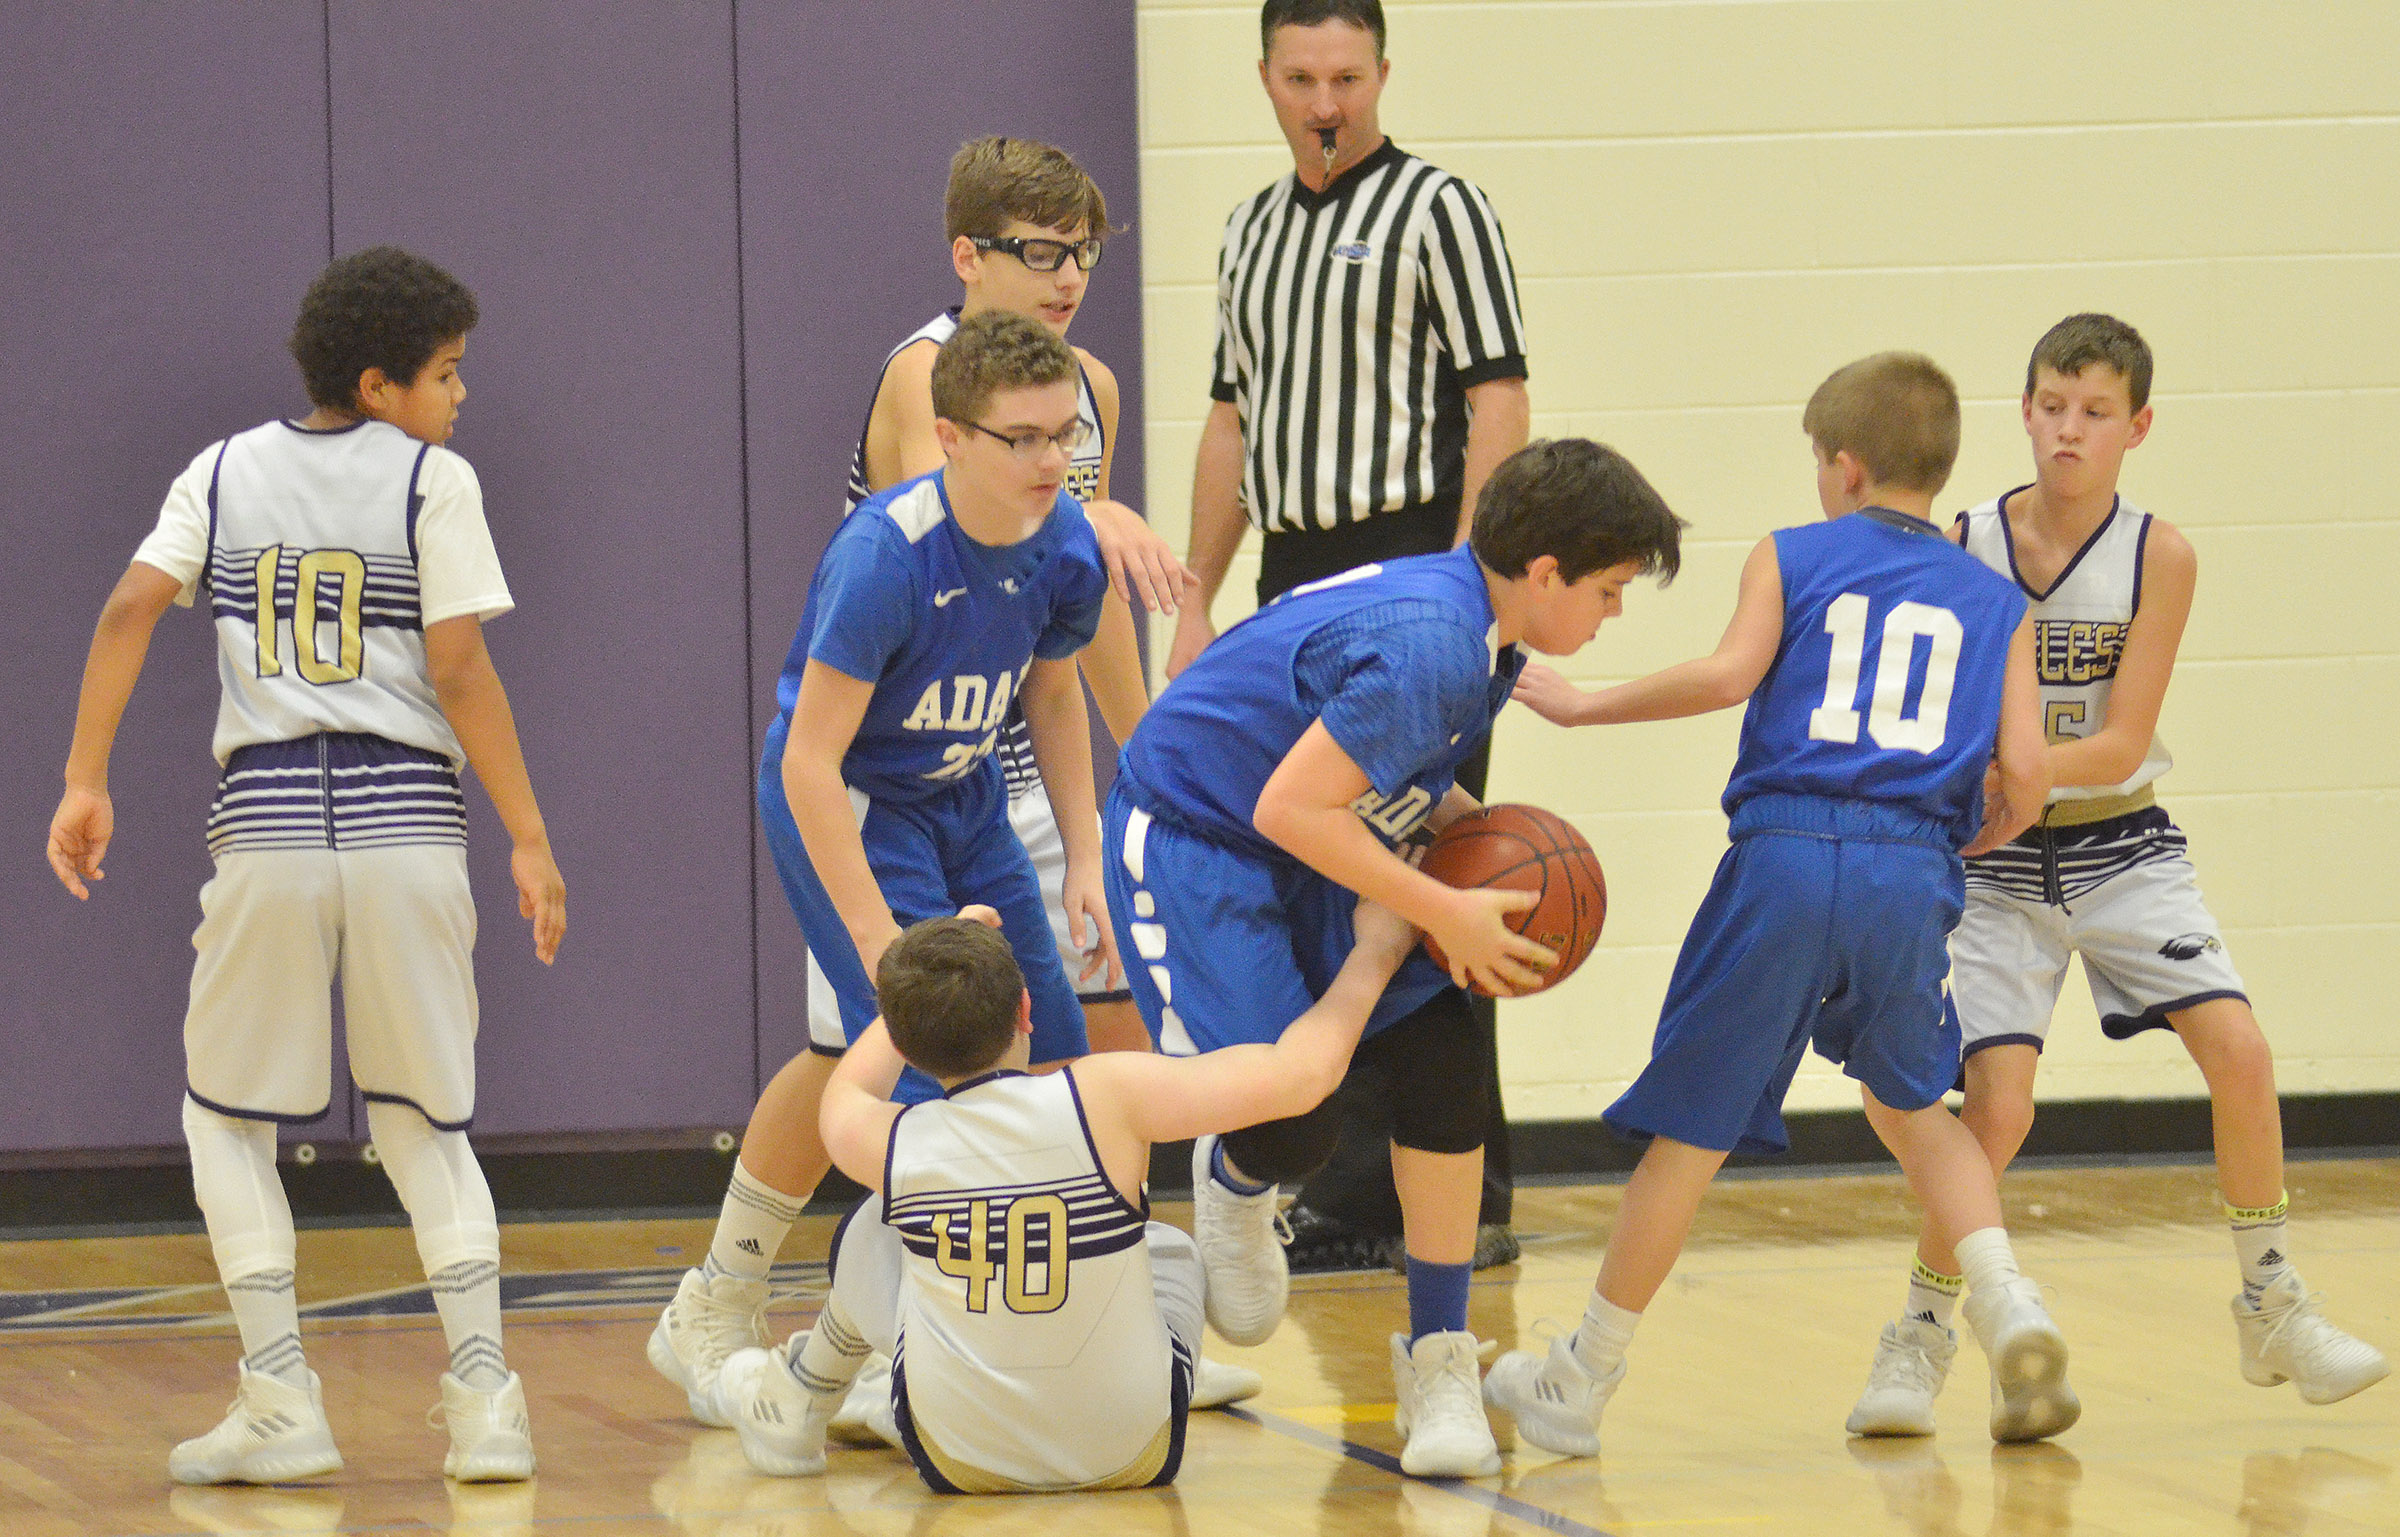 From left, CMS sixth-grader Tashaun Hart and Campbellsville Elementary School fifth-graders Dalton Morris, Andrew Mardis and Rowan Petett fight for the ball.